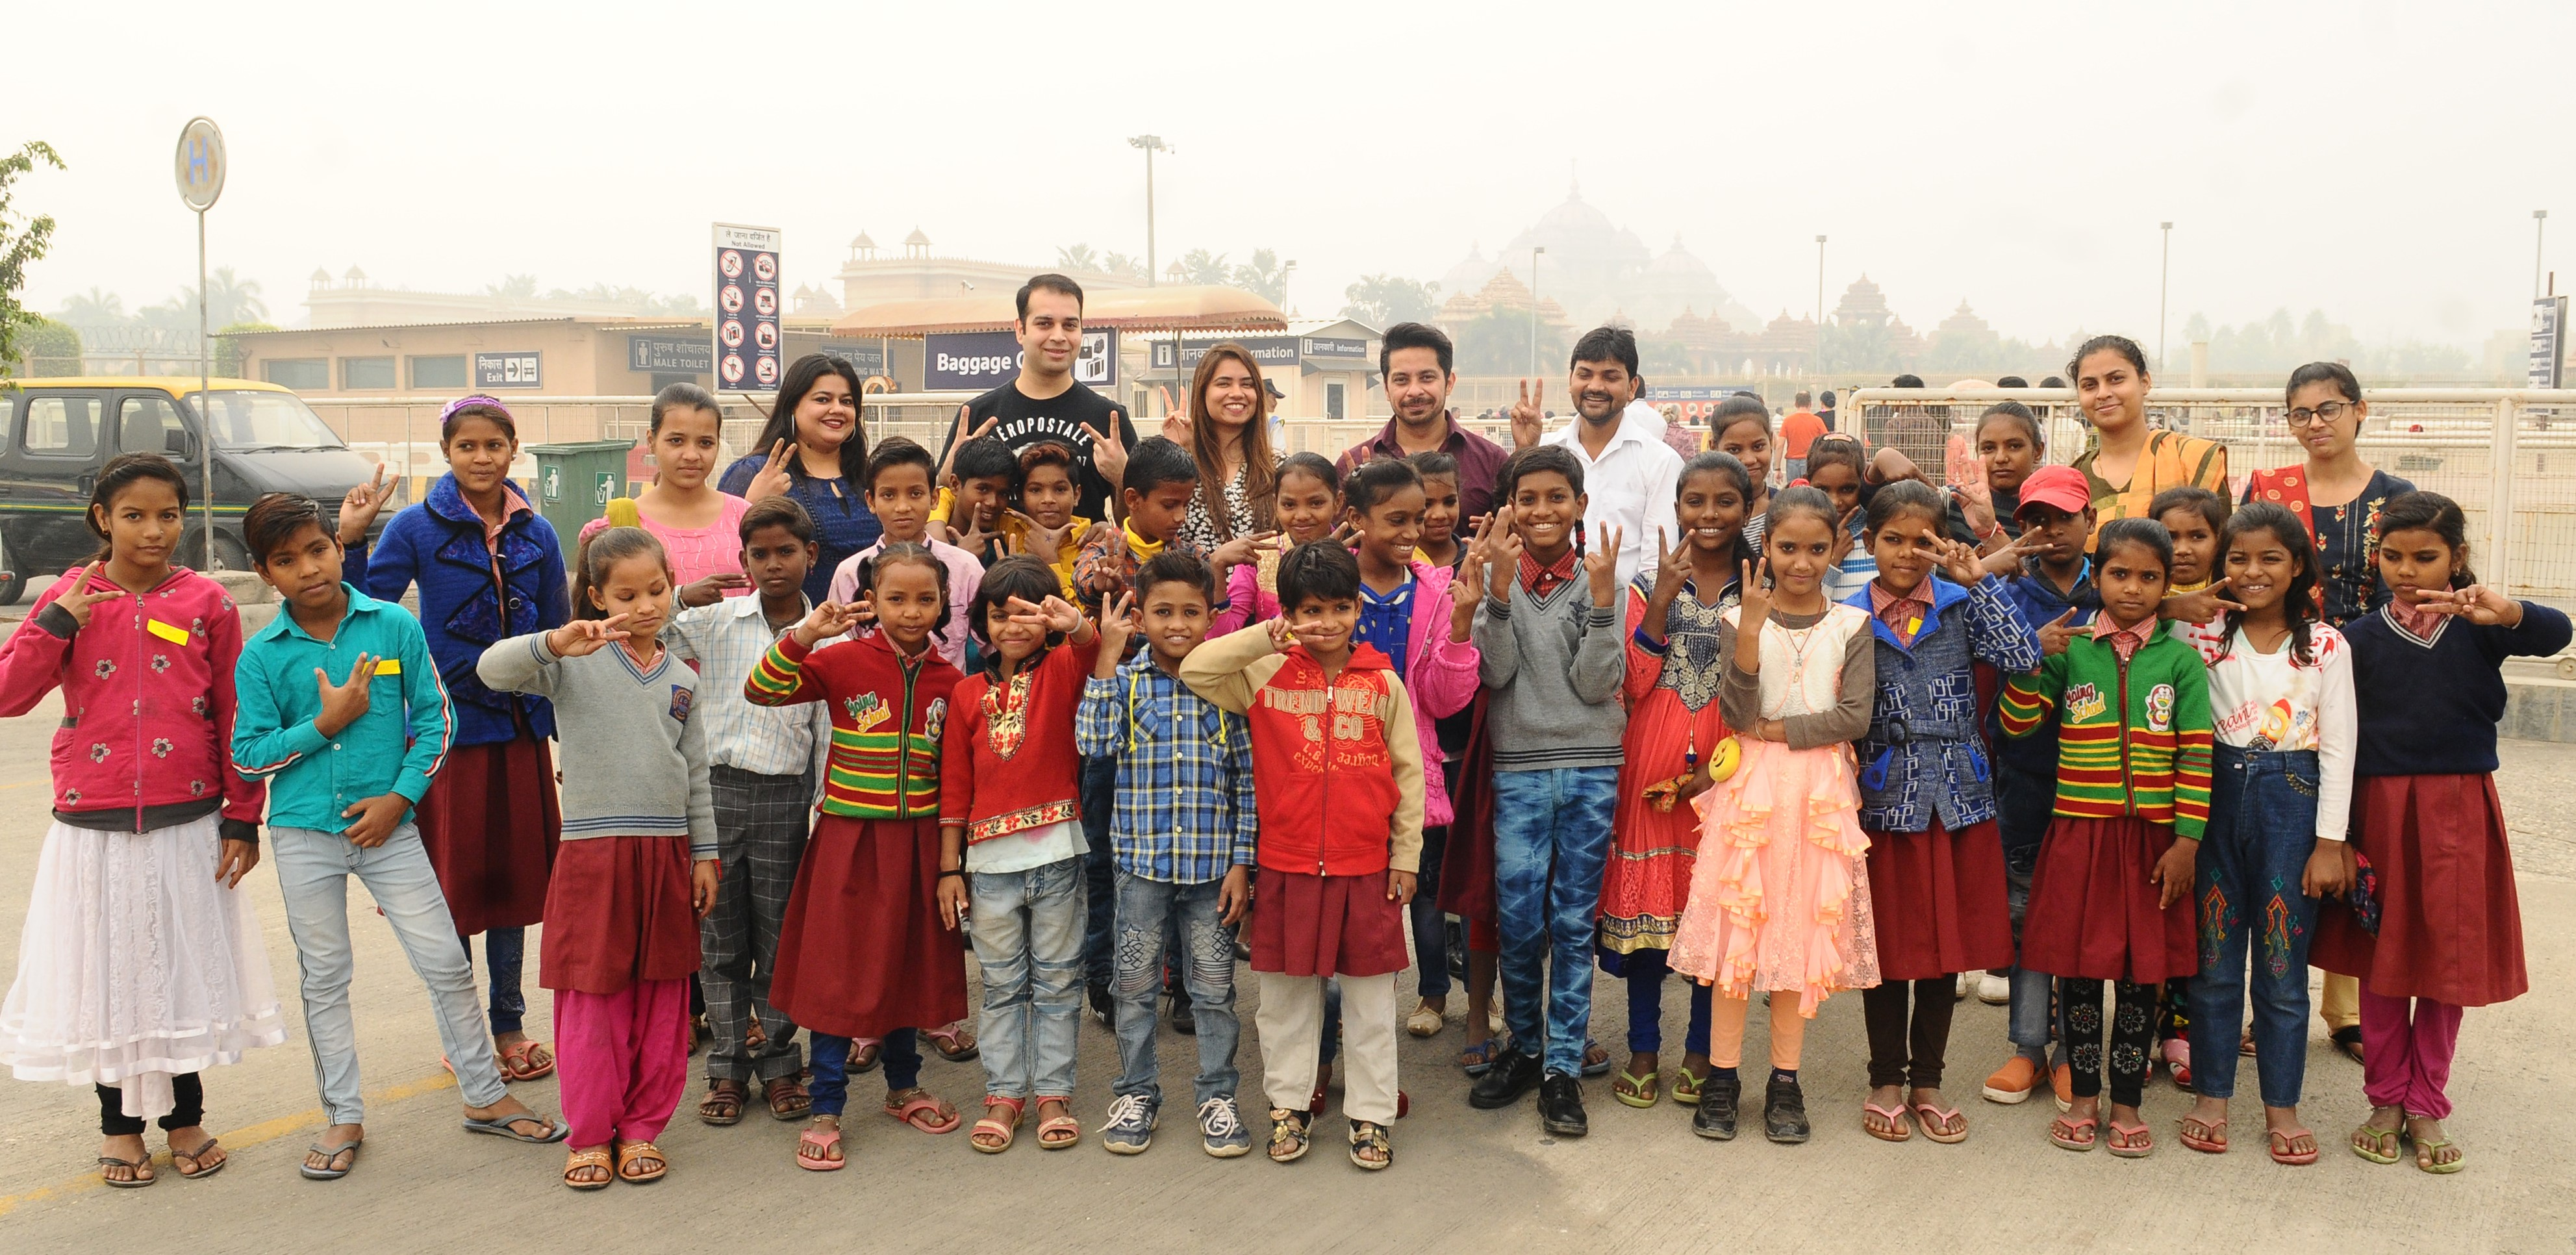 Barco-celebrates-Children's-Day-with-children-from-Sakshi-NGO-at-Swaminarayan-Akshardham-Delhi-as-the-temple-completes-14-years